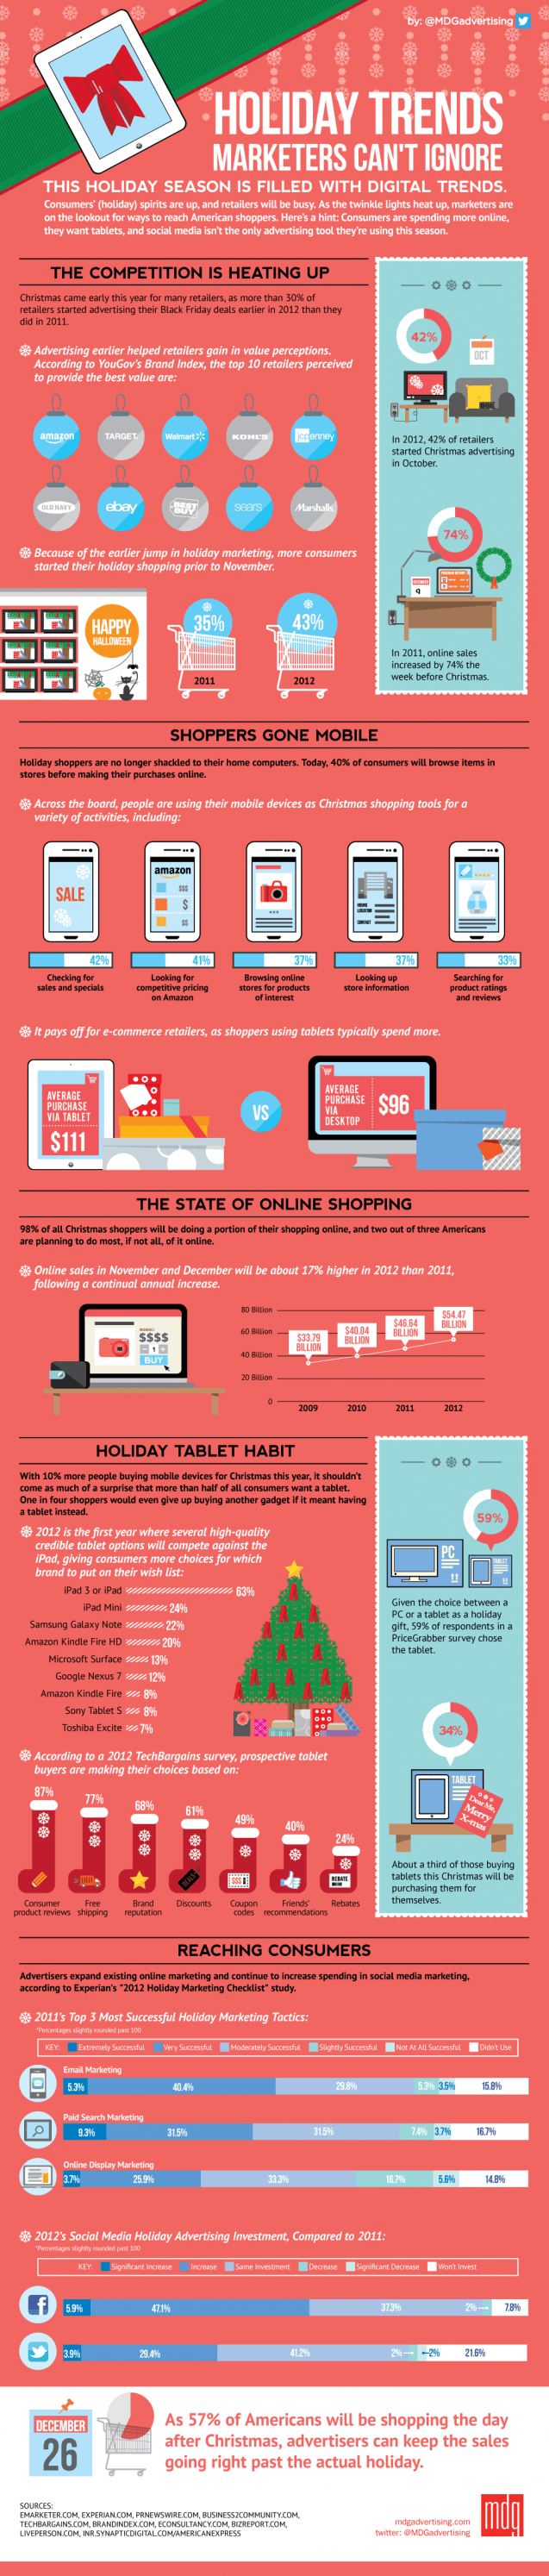 Holiday Shopping Trends That Marketers Need To Know